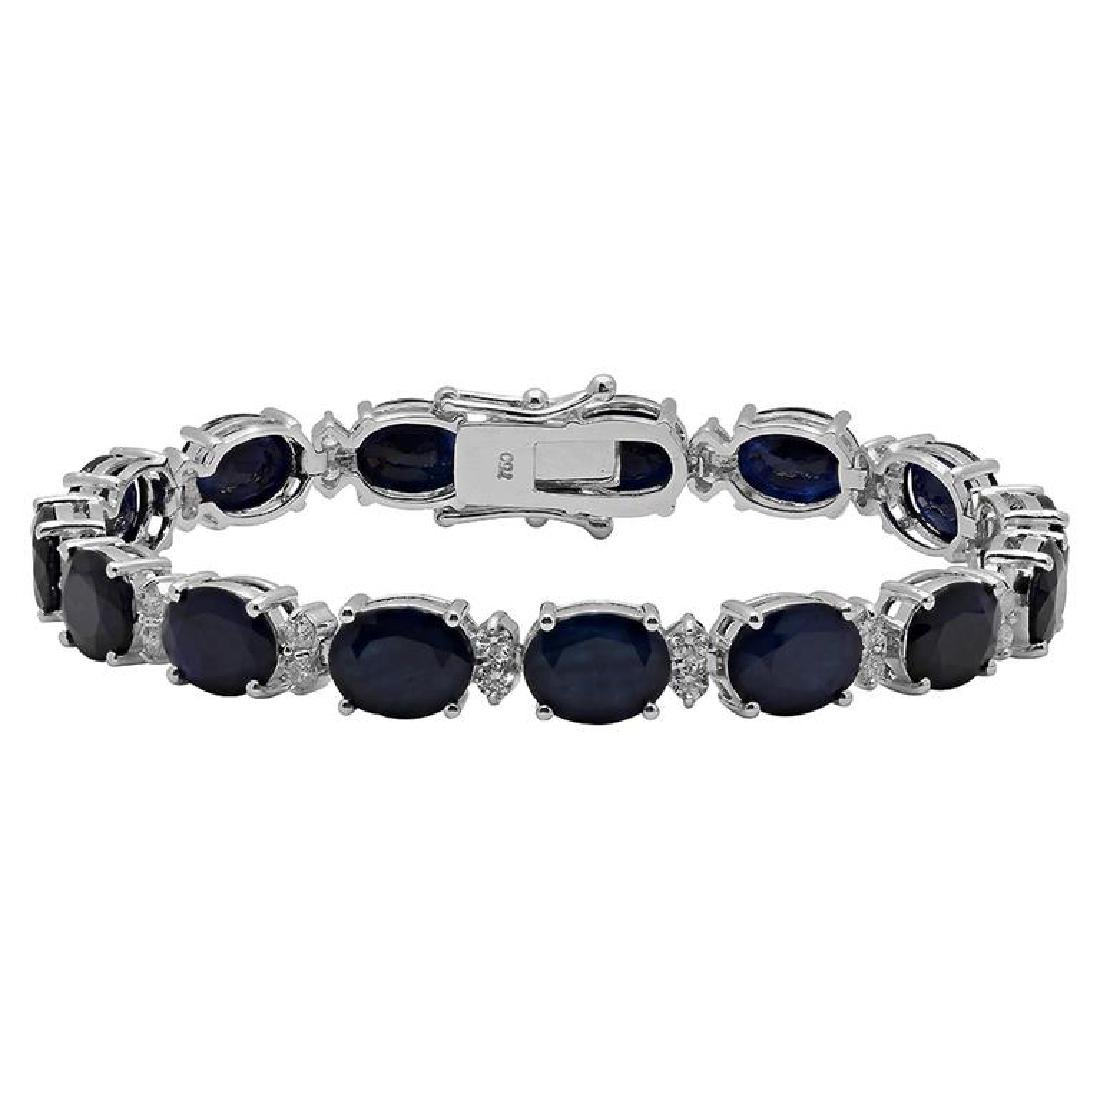 14k White Gold 28.16ct Sapphire 1.38ct Diamond Bracelet